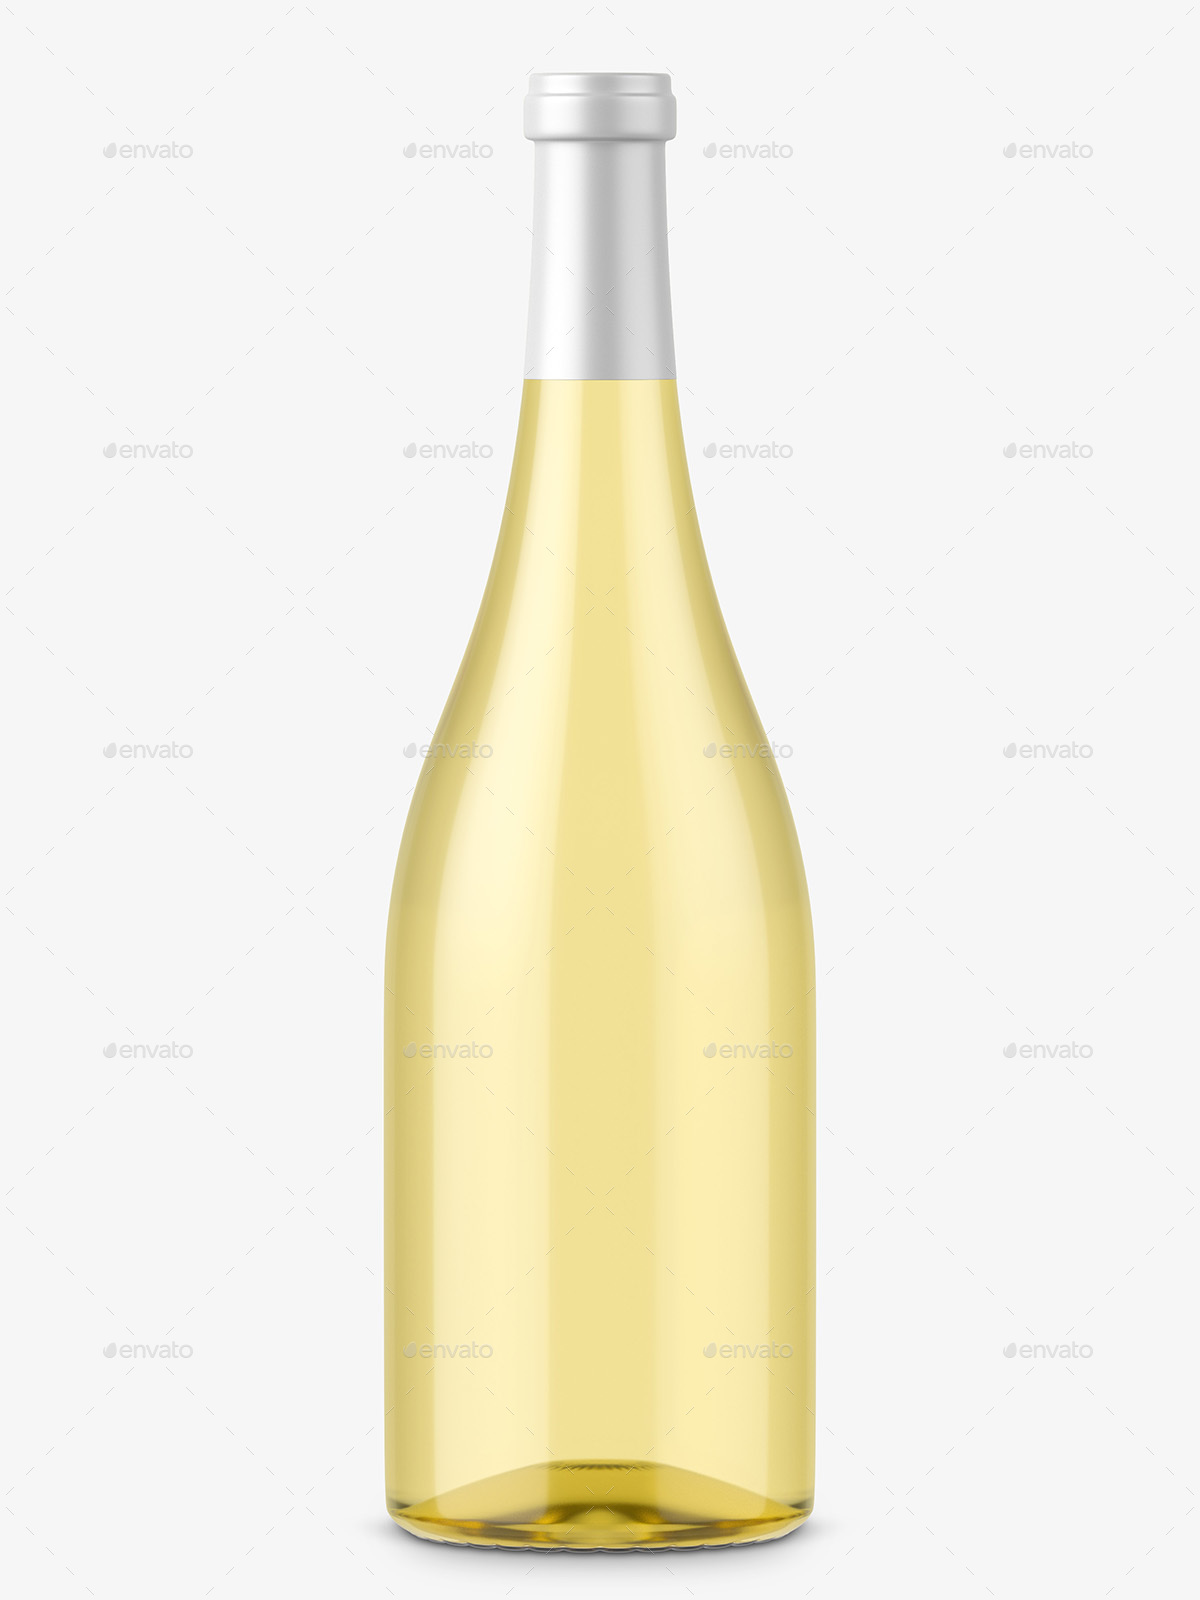 Wine Bottles Pictures | Free download best Wine Bottles Pictures on ...